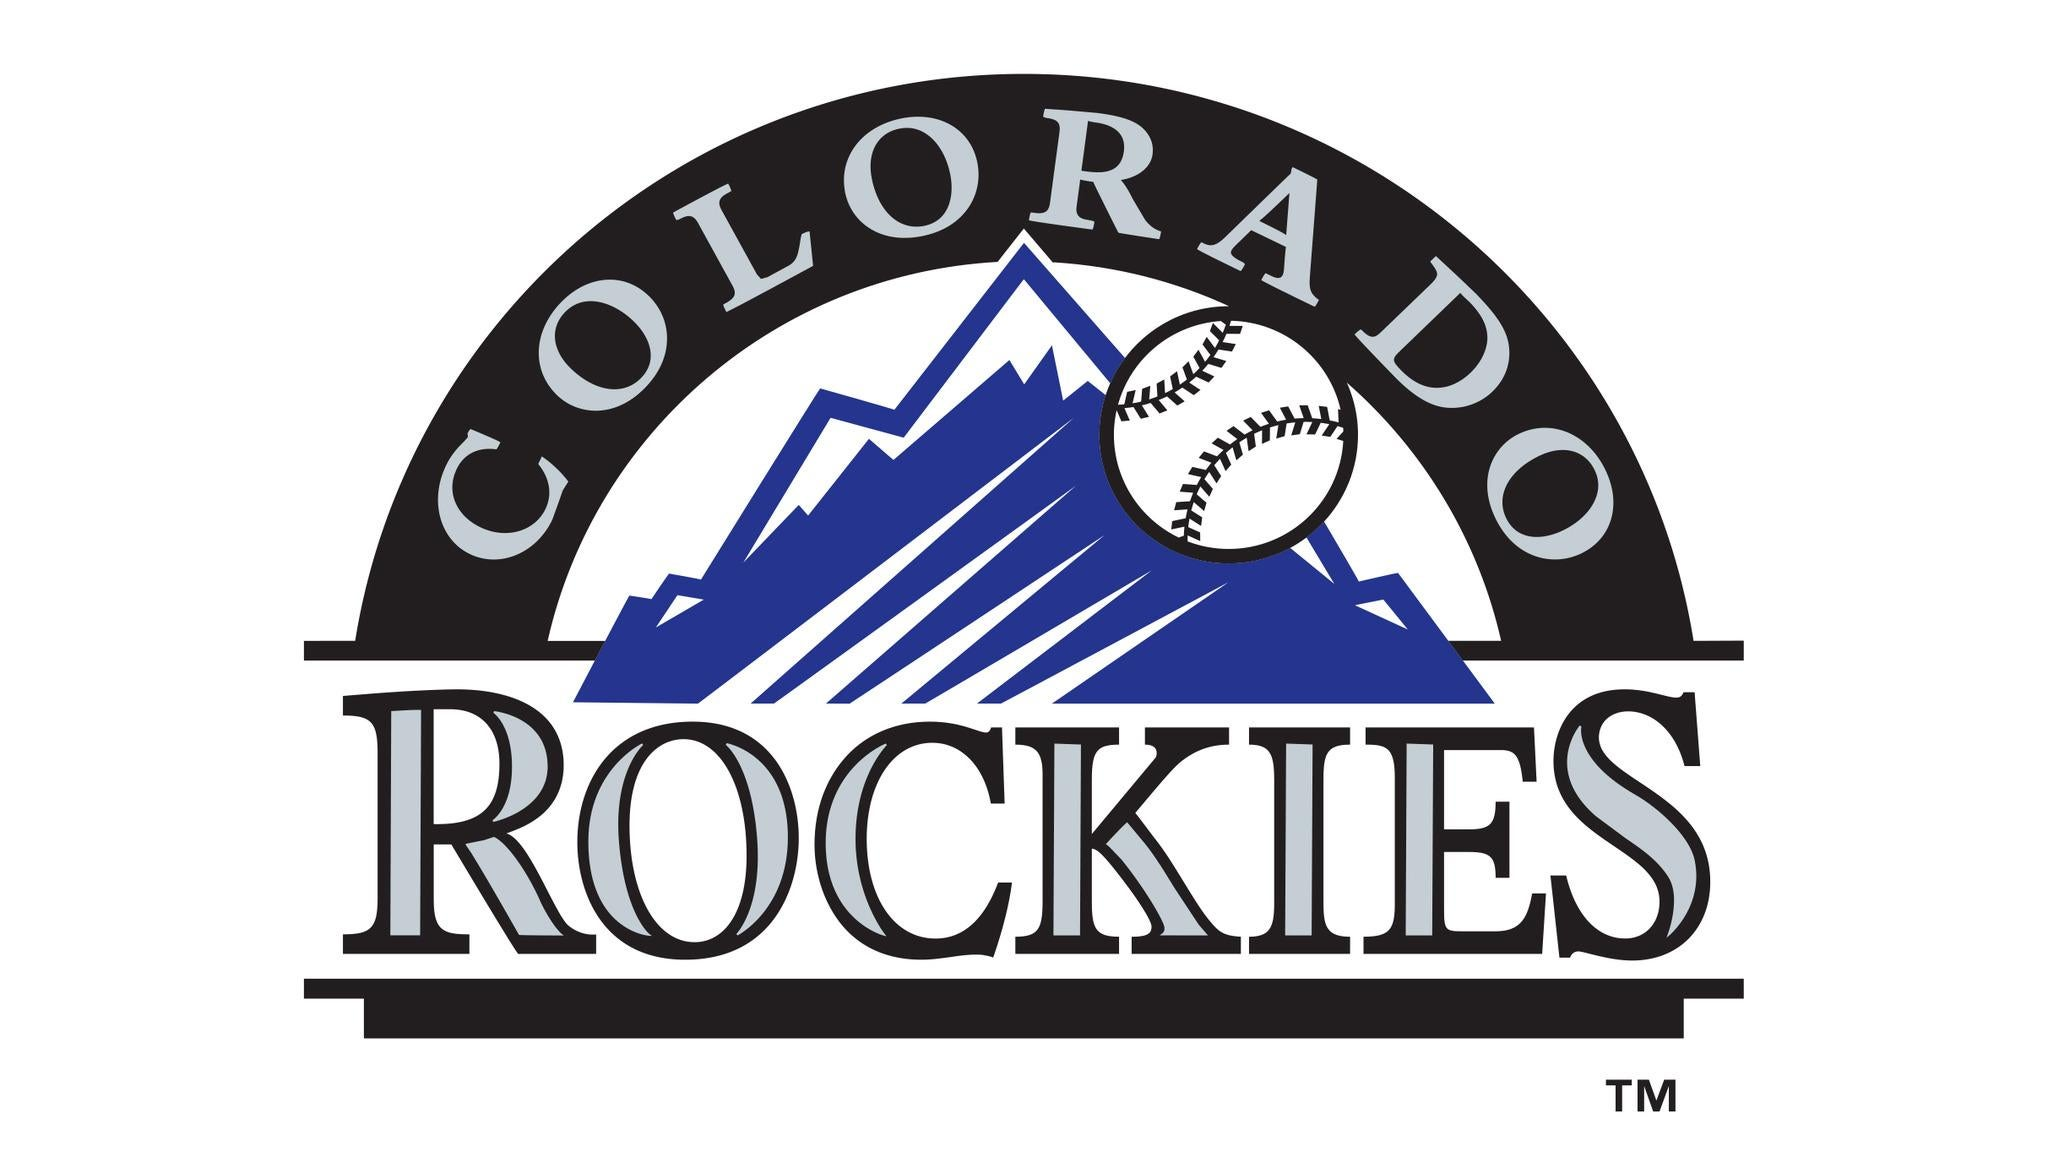 Colorado Rockies vs. St. Louis Cardinals at Coors Field - Denver, CO 80205